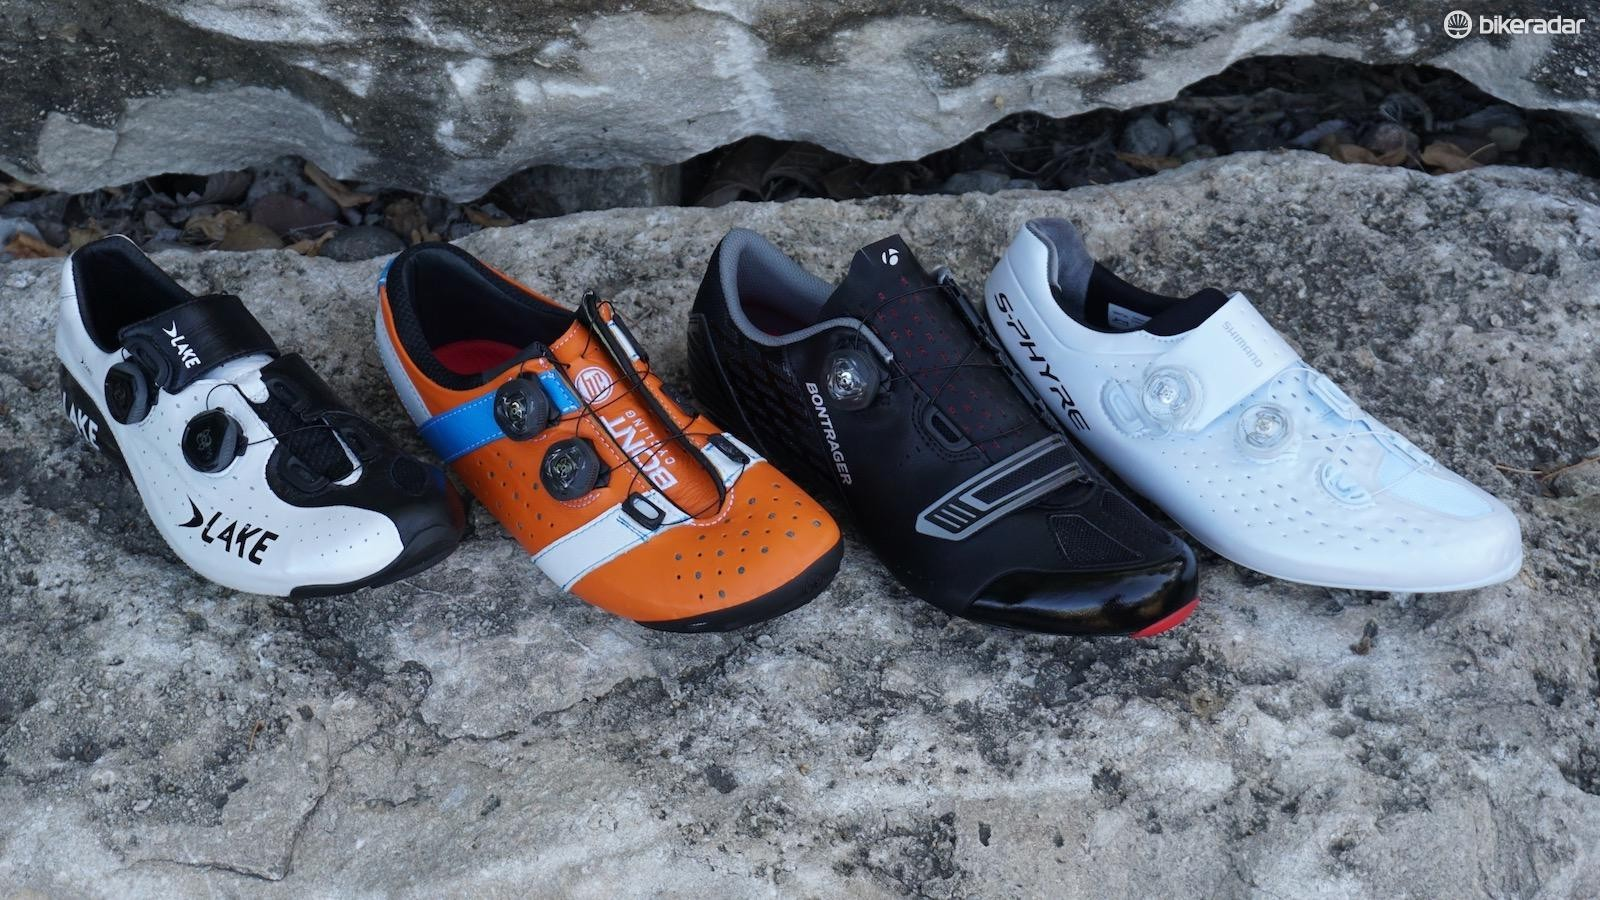 74a4c40b9d708 Lake CX402 and Bont Vaypor+ are biomechanically proficient (roomy in the  forefoot) — Bontrager